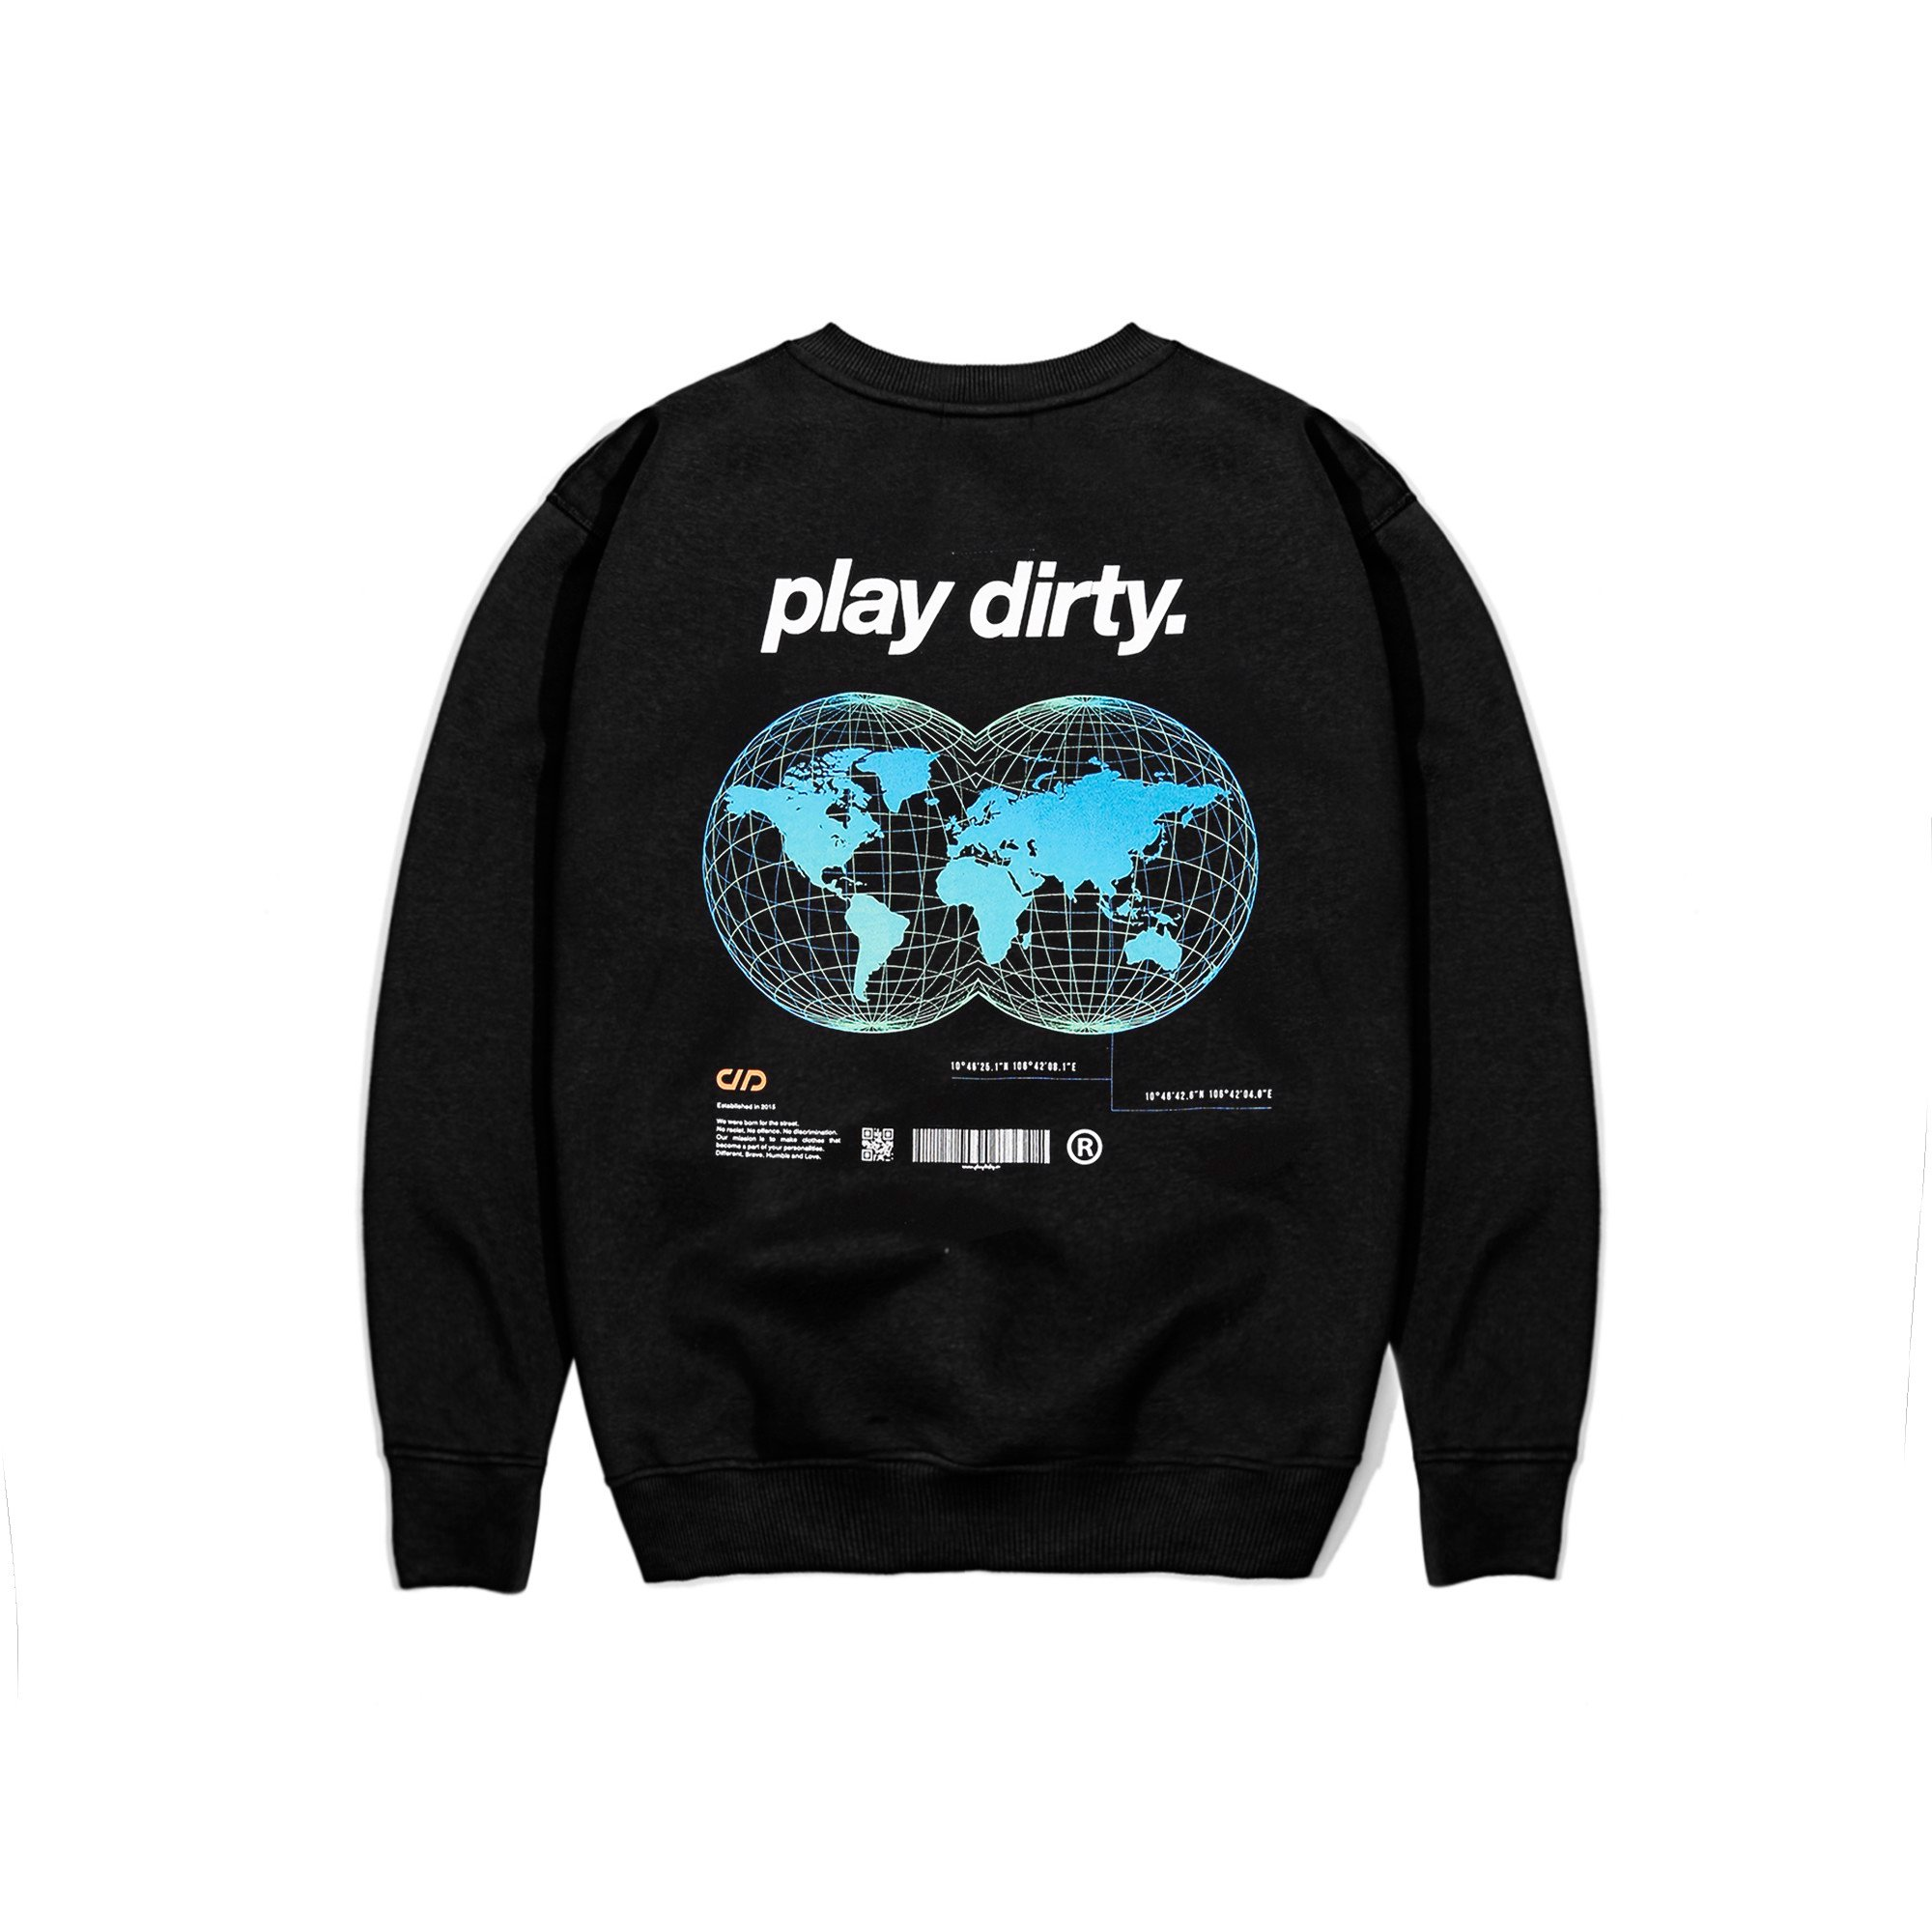 PD Worlwide Sweater